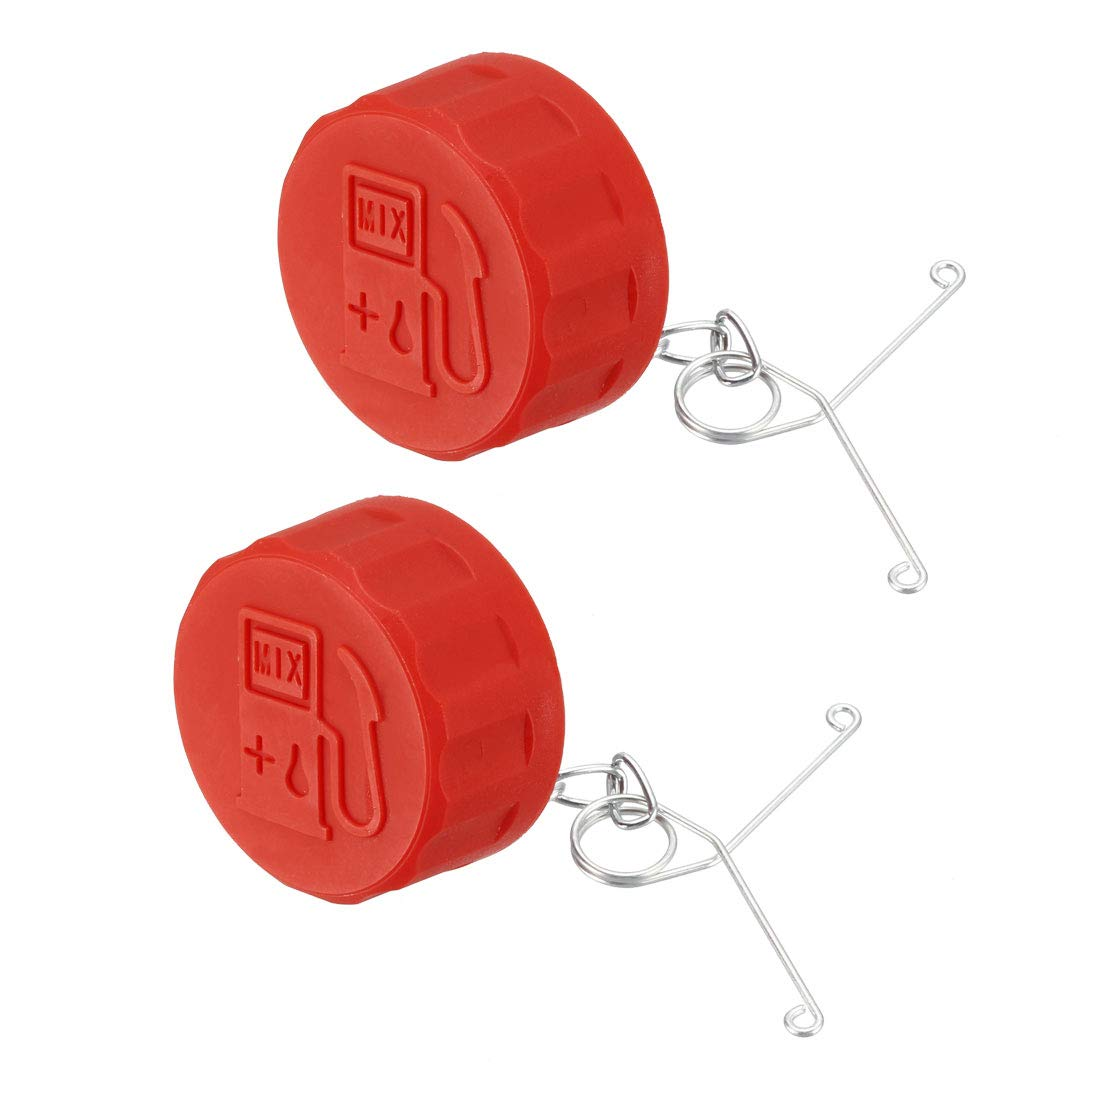 uxcell A033000070 Fuel Tank Cap Replaces Obsolete Part 20000-85200 70043-85200 70043-85201 and 20000-85201